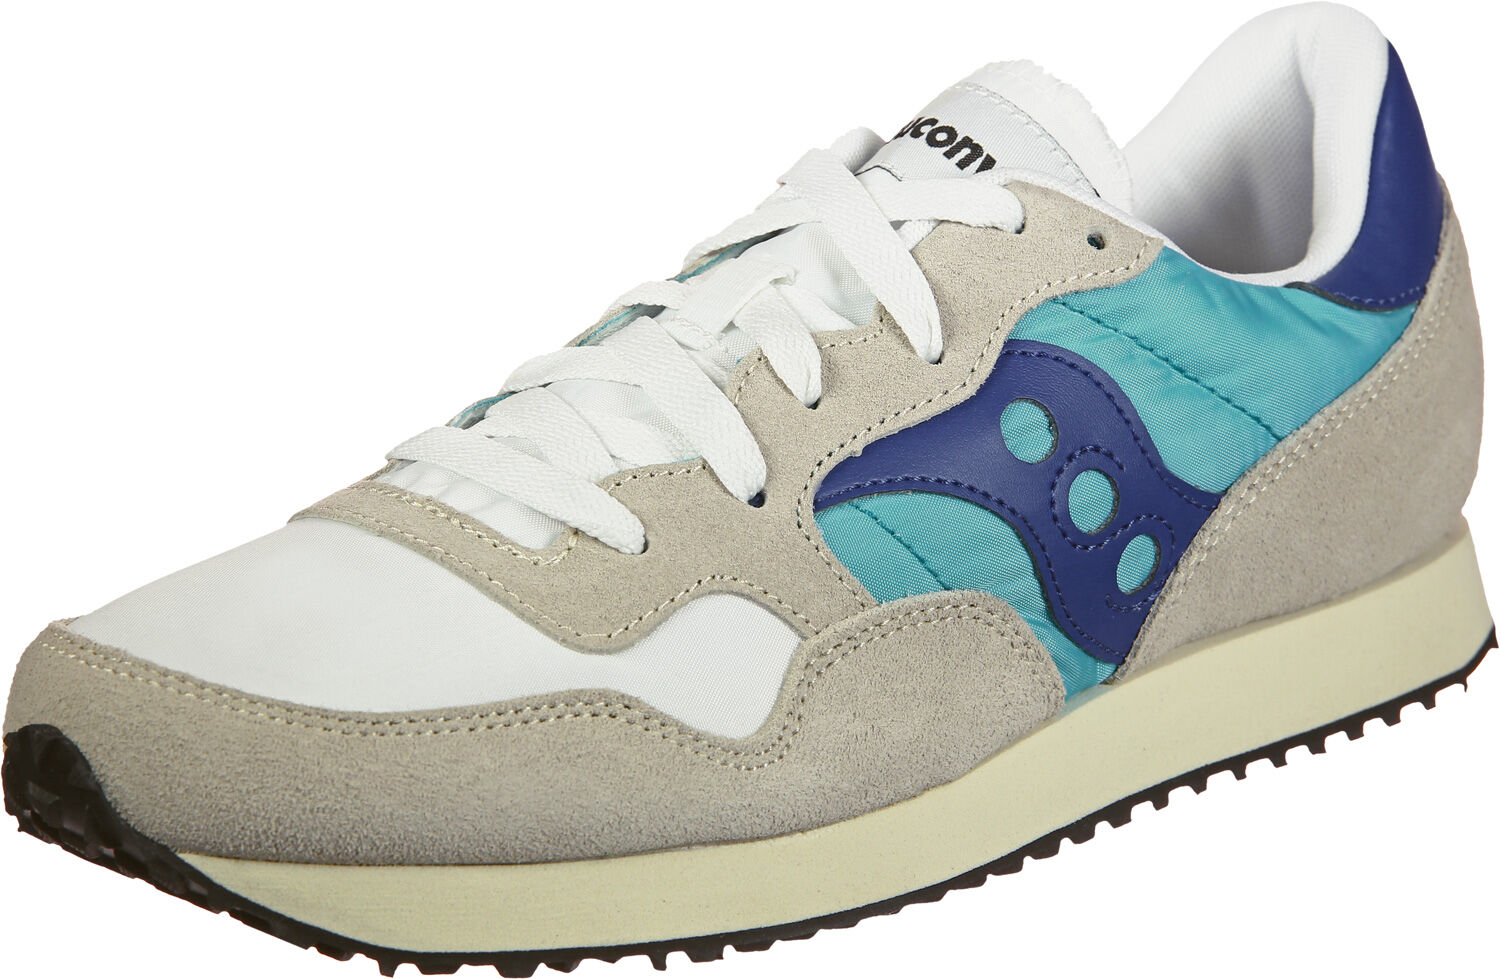 Saucony DXN Vintage - Sneakers Low at